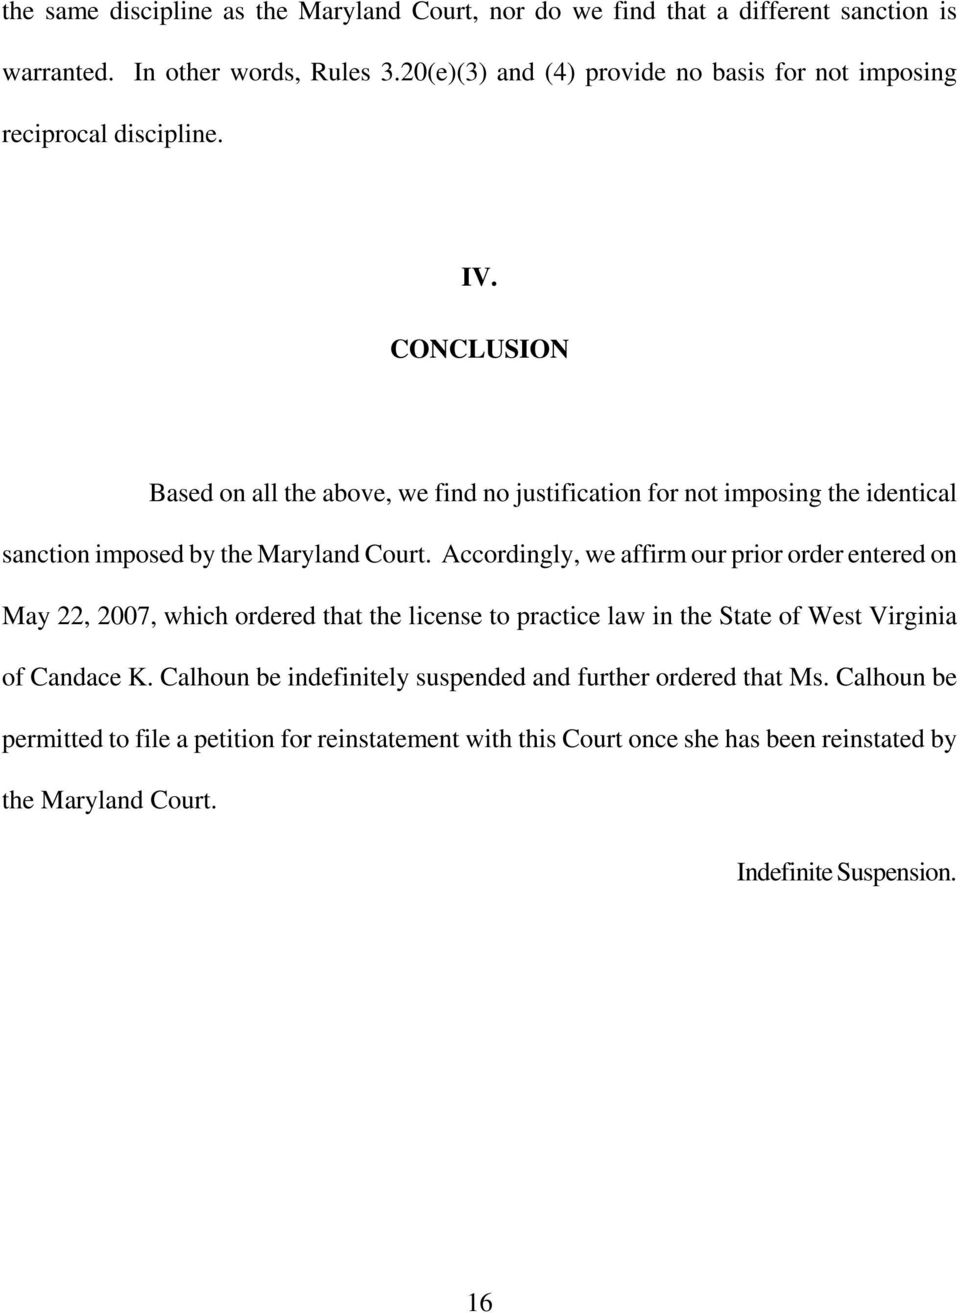 CONCLUSION Based on all the above, we find no justification for not imposing the identical sanction imposed by the Maryland Court.